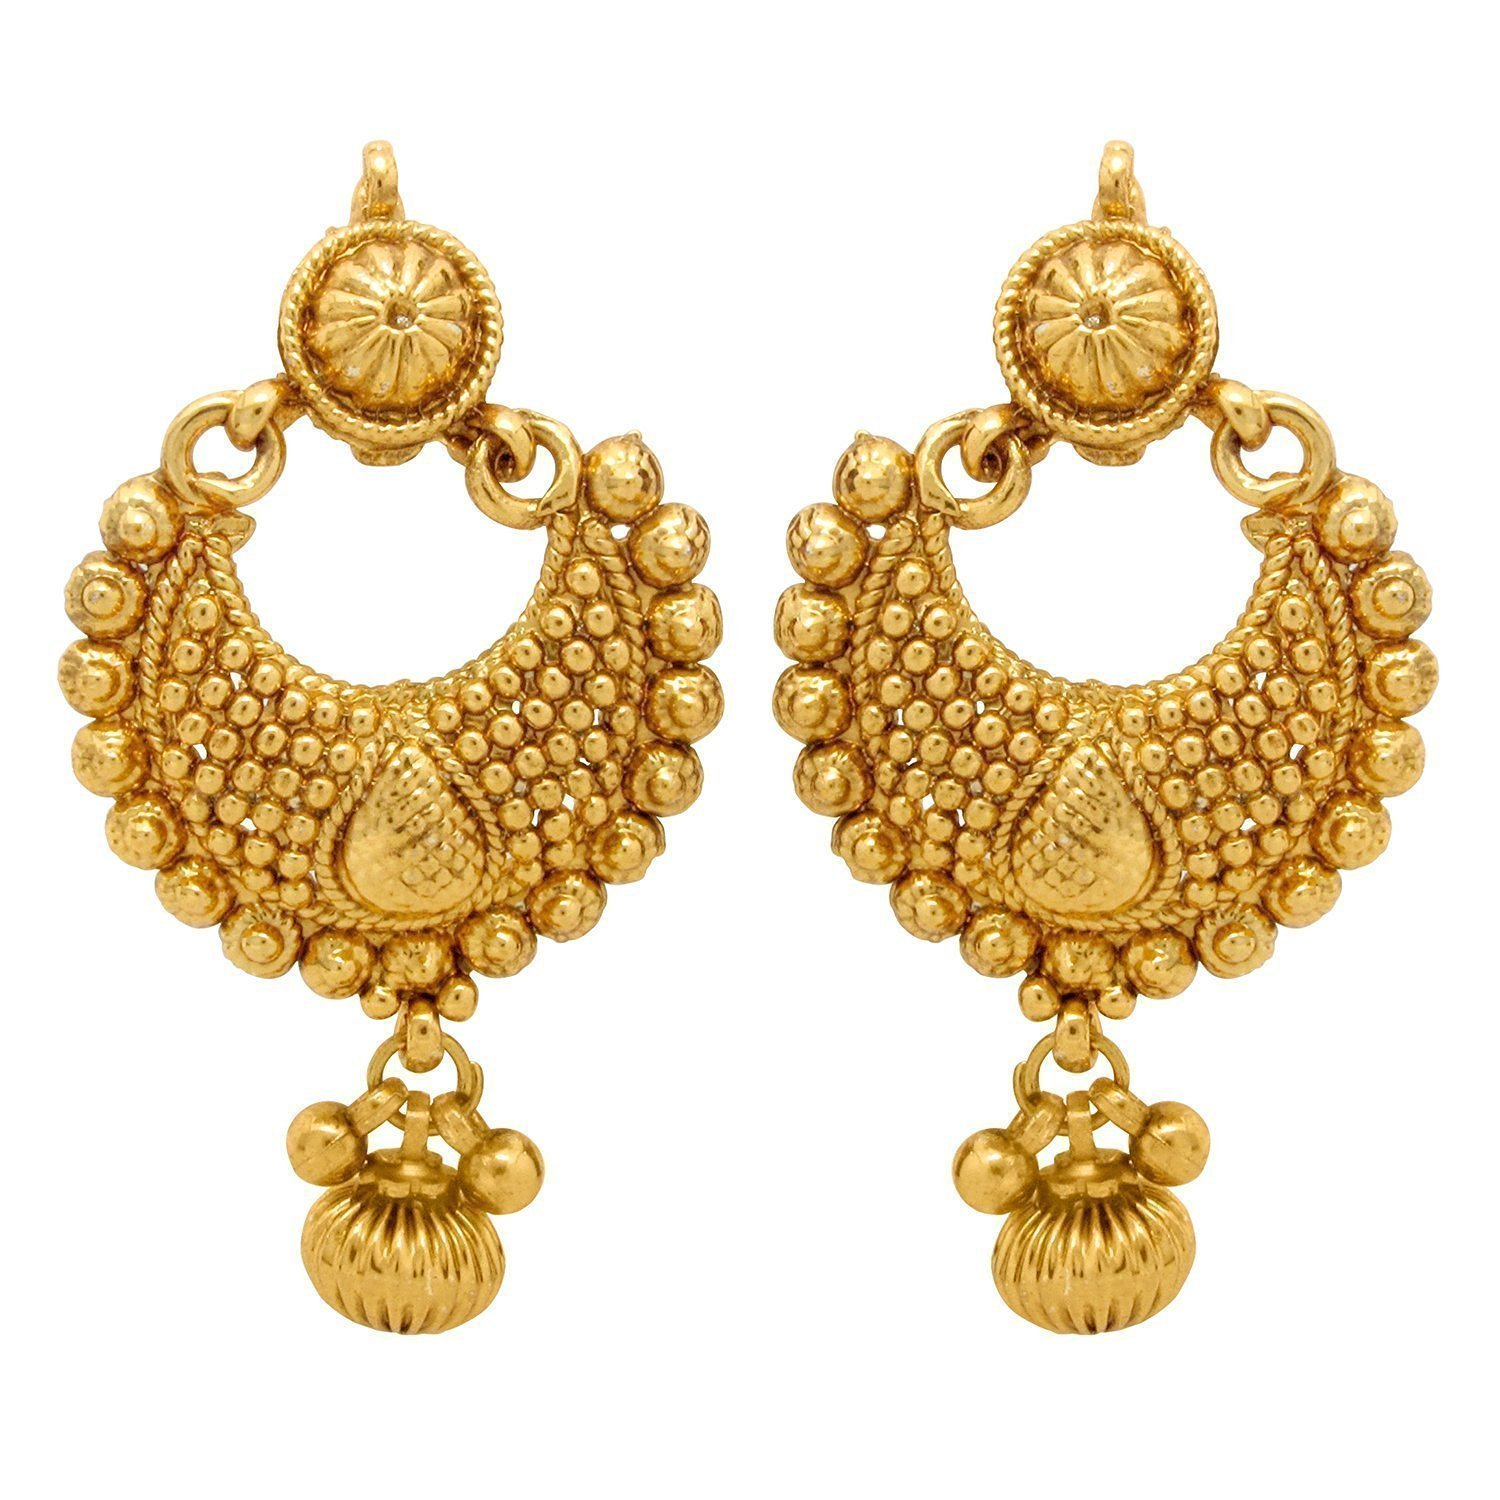 com selling tetrahedron goldplated earrings products star plated product gold top